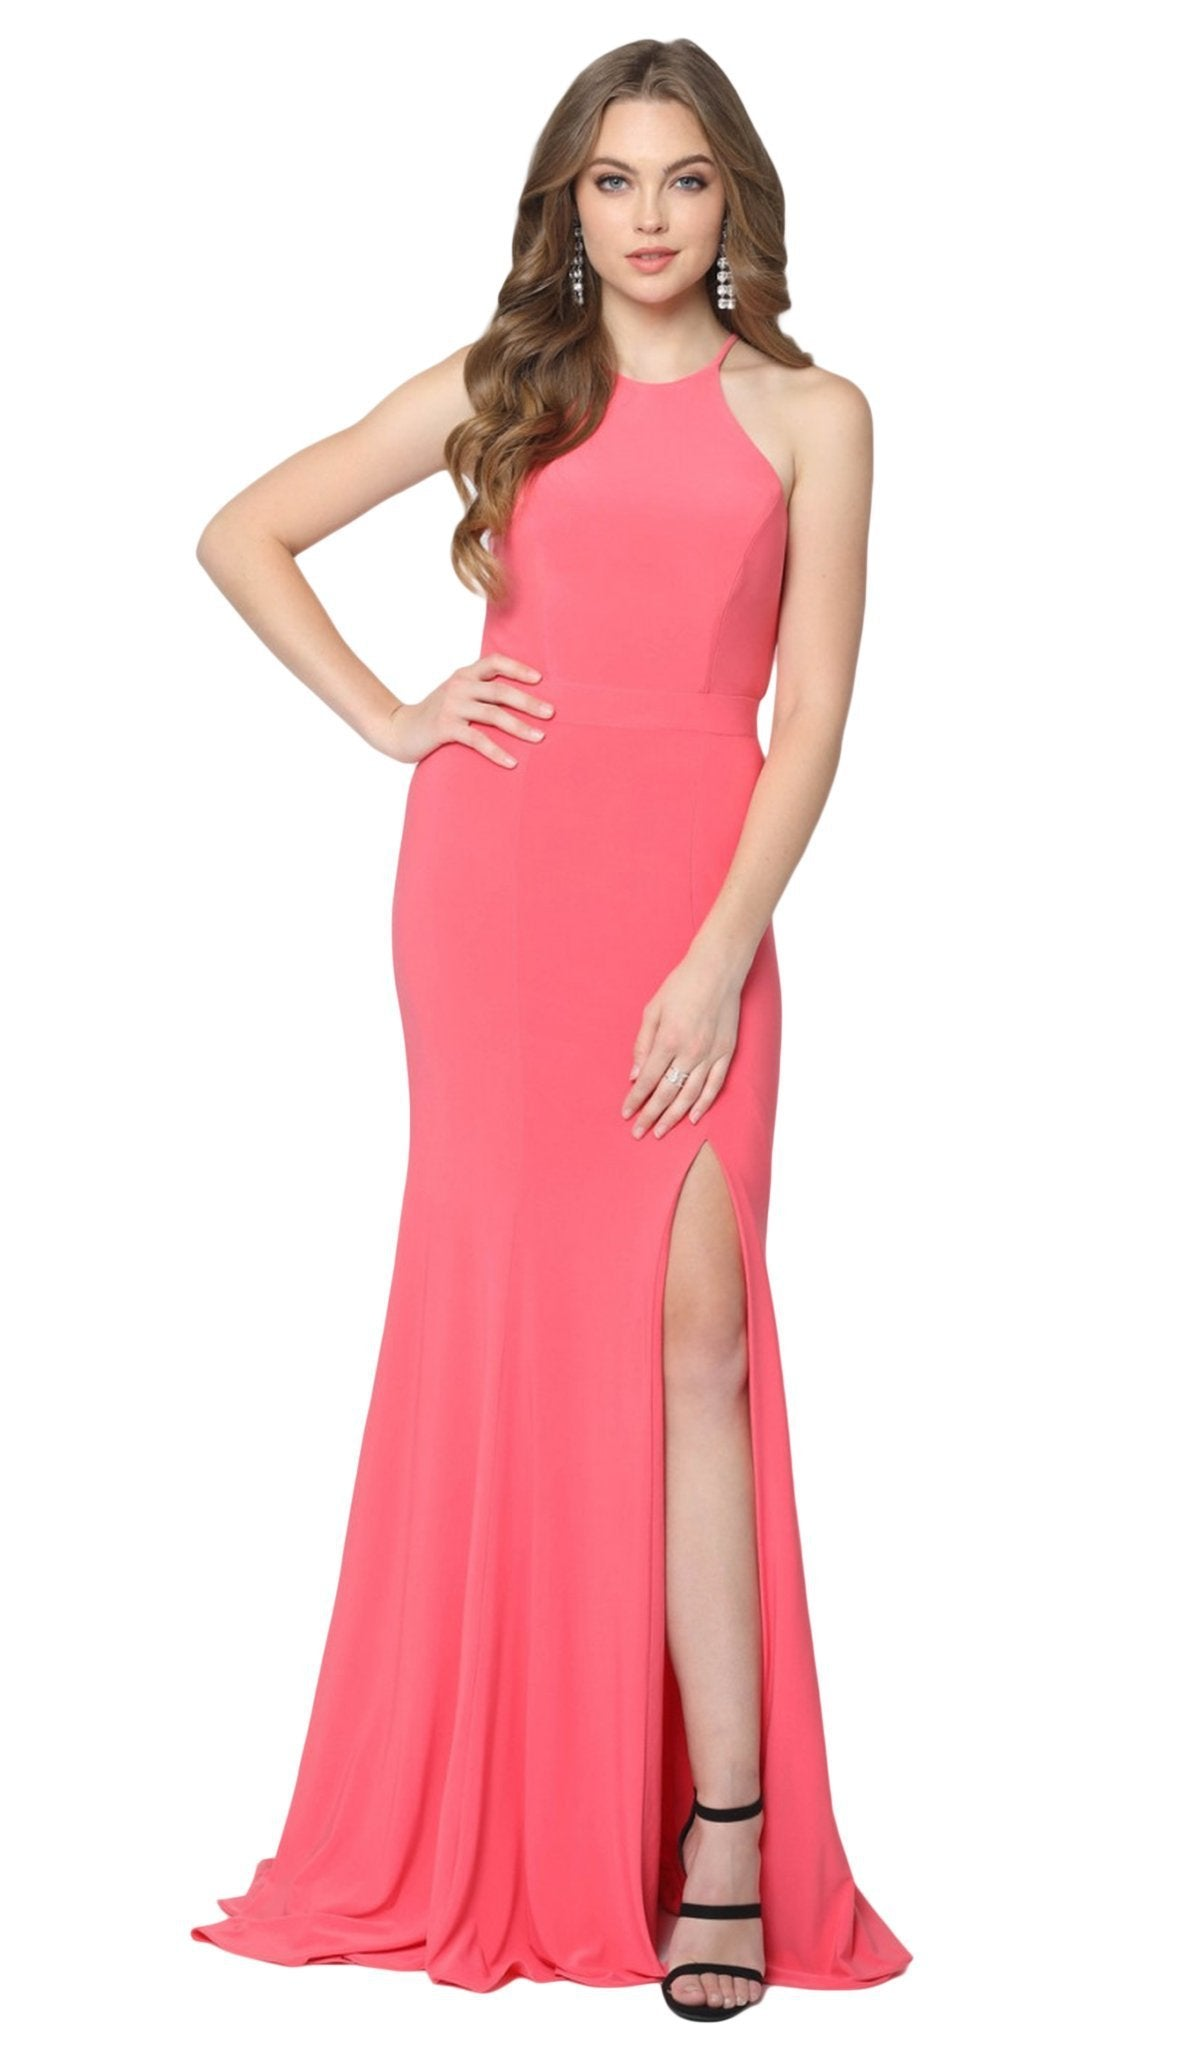 Nox Anabel - Q131 High Halter Georgette Mermaid Gown with Slit In Orange and Pink